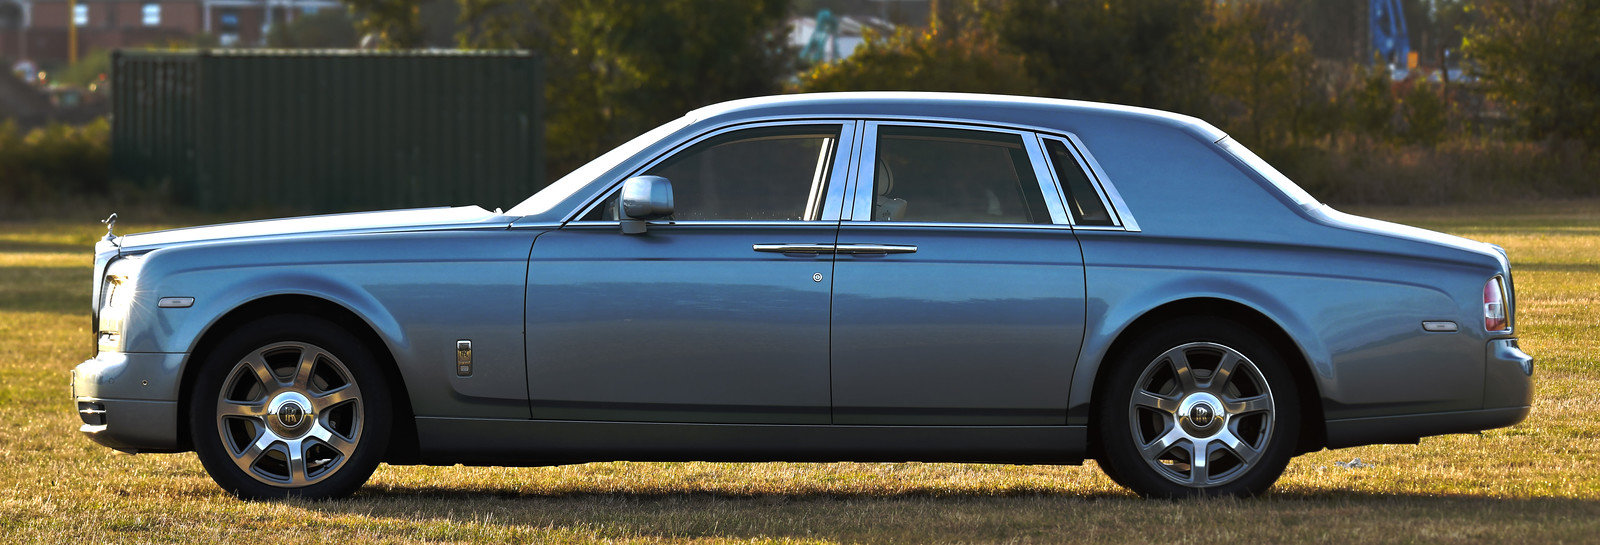 2016 Rolls Royce Phantom 7 For Sale (picture 2 of 6)